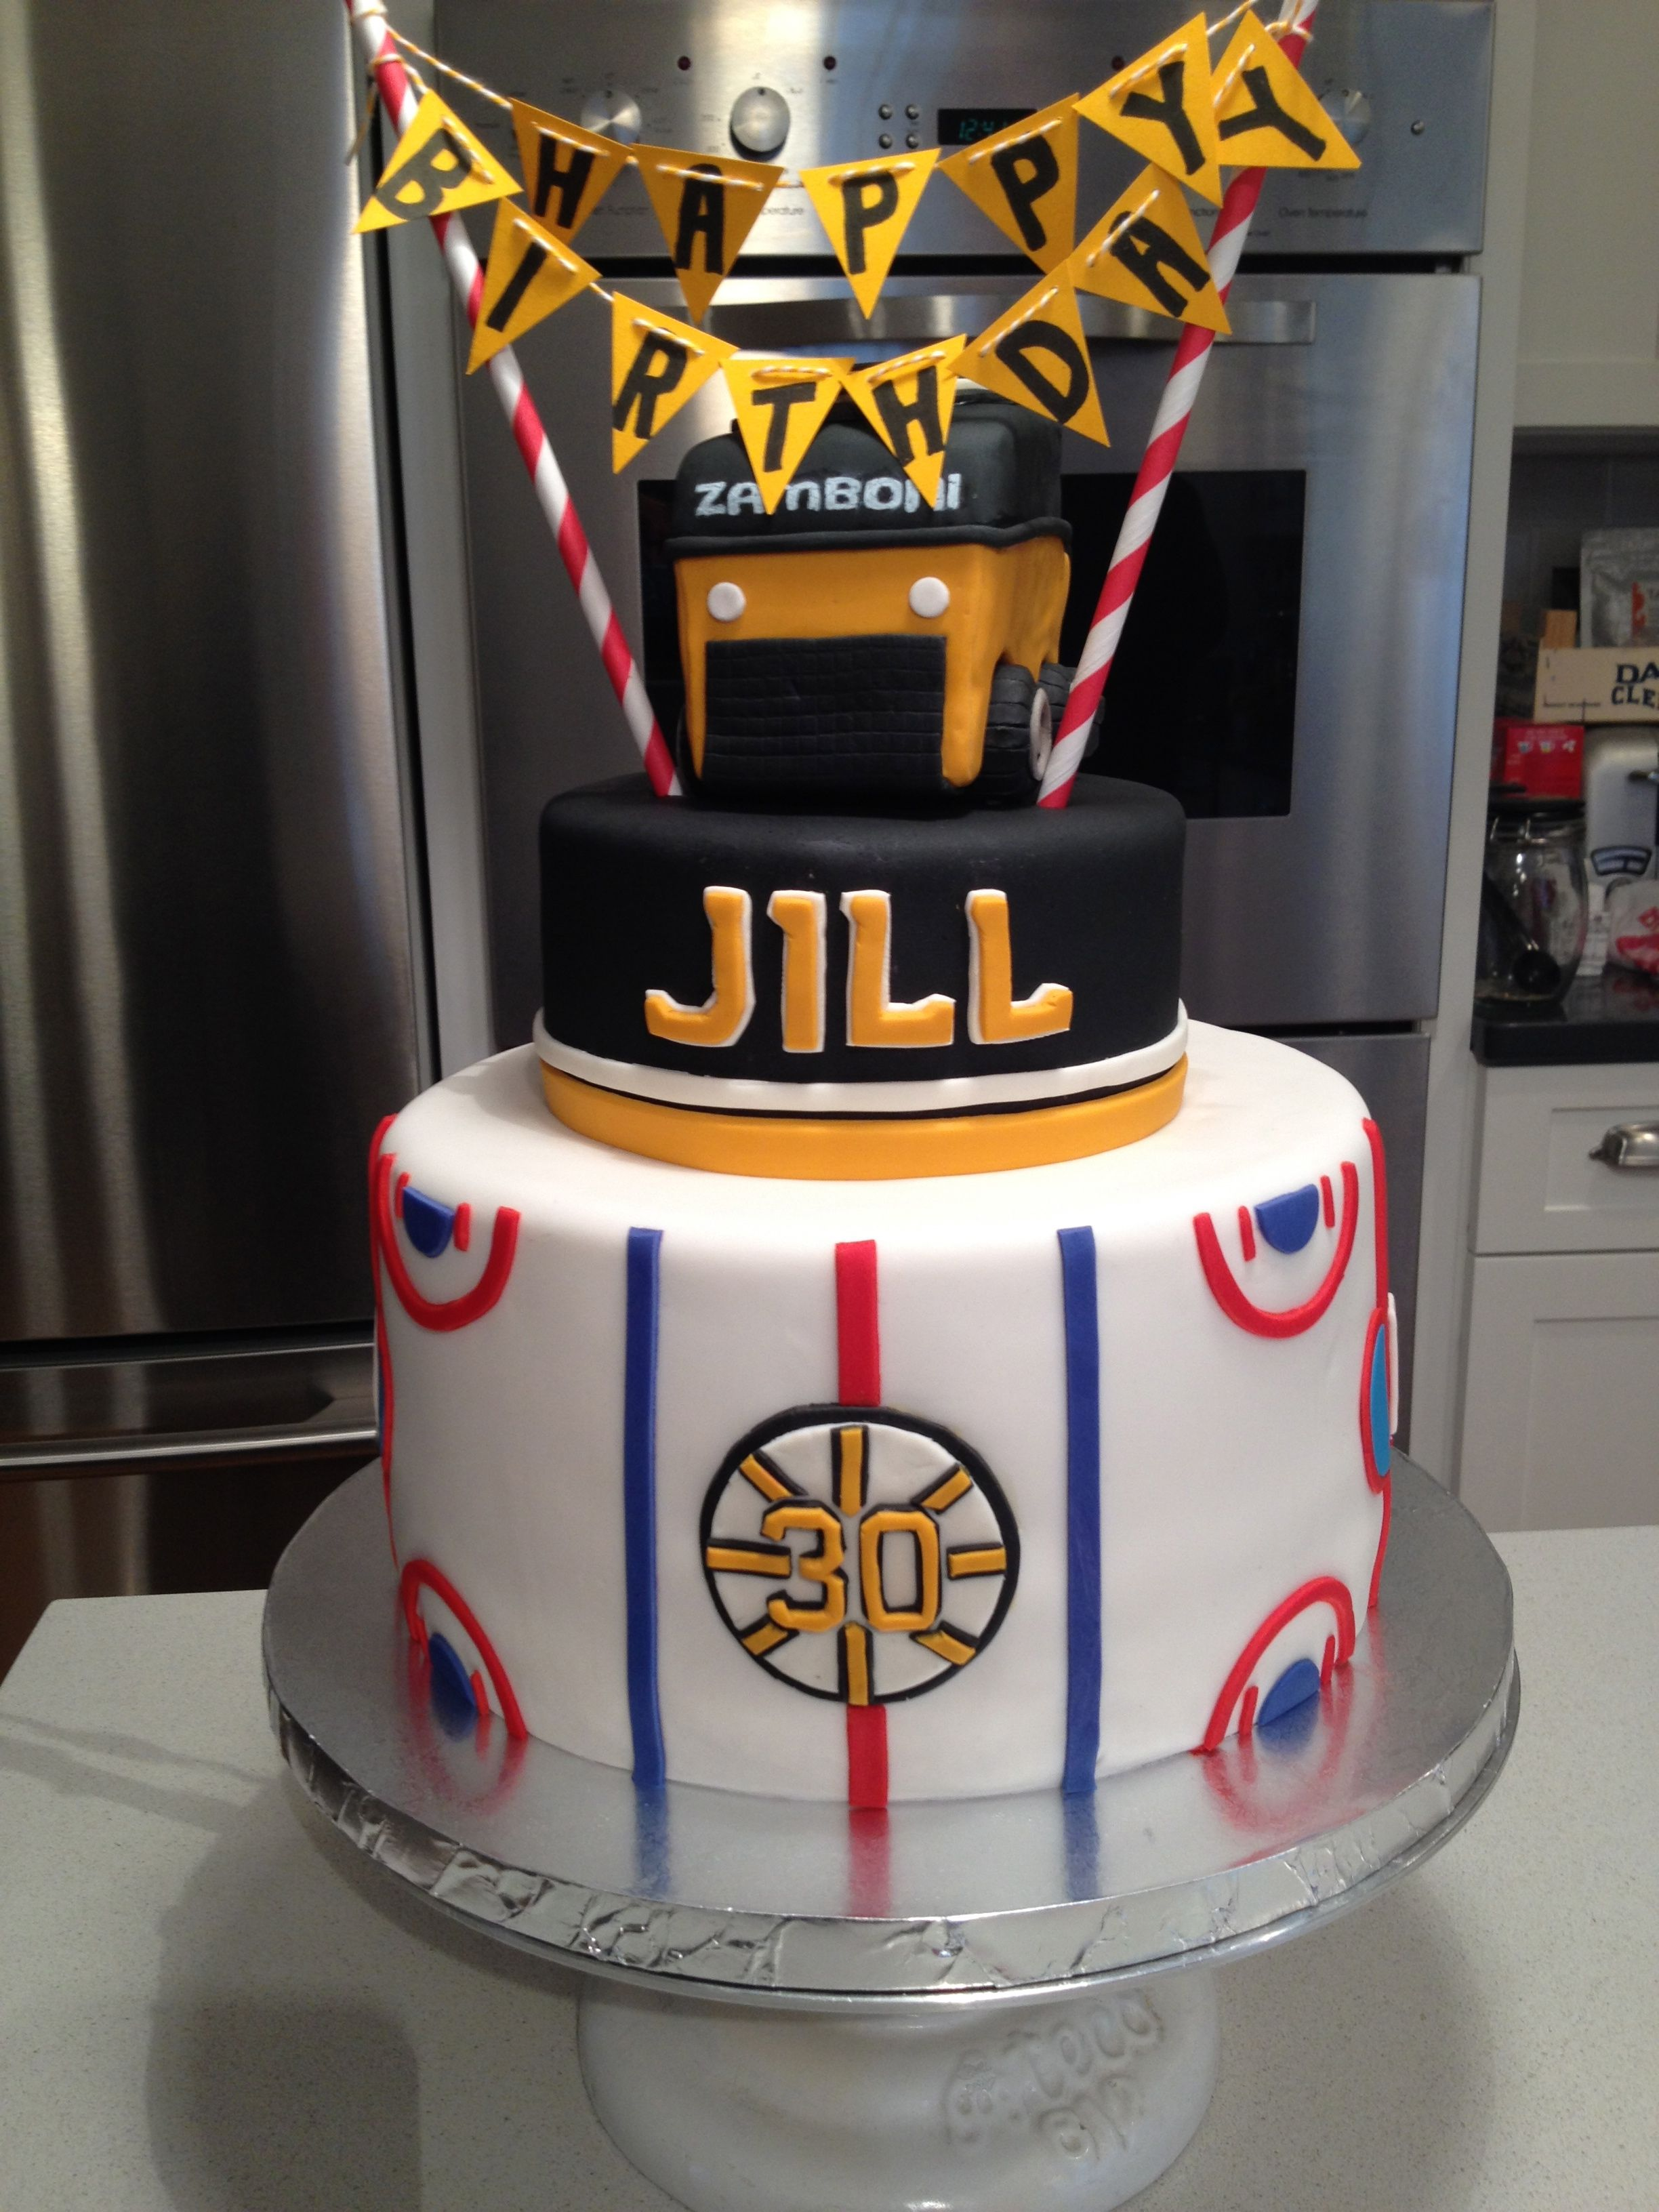 Boston Bruins Birthday Cake Complete With A Zamboni